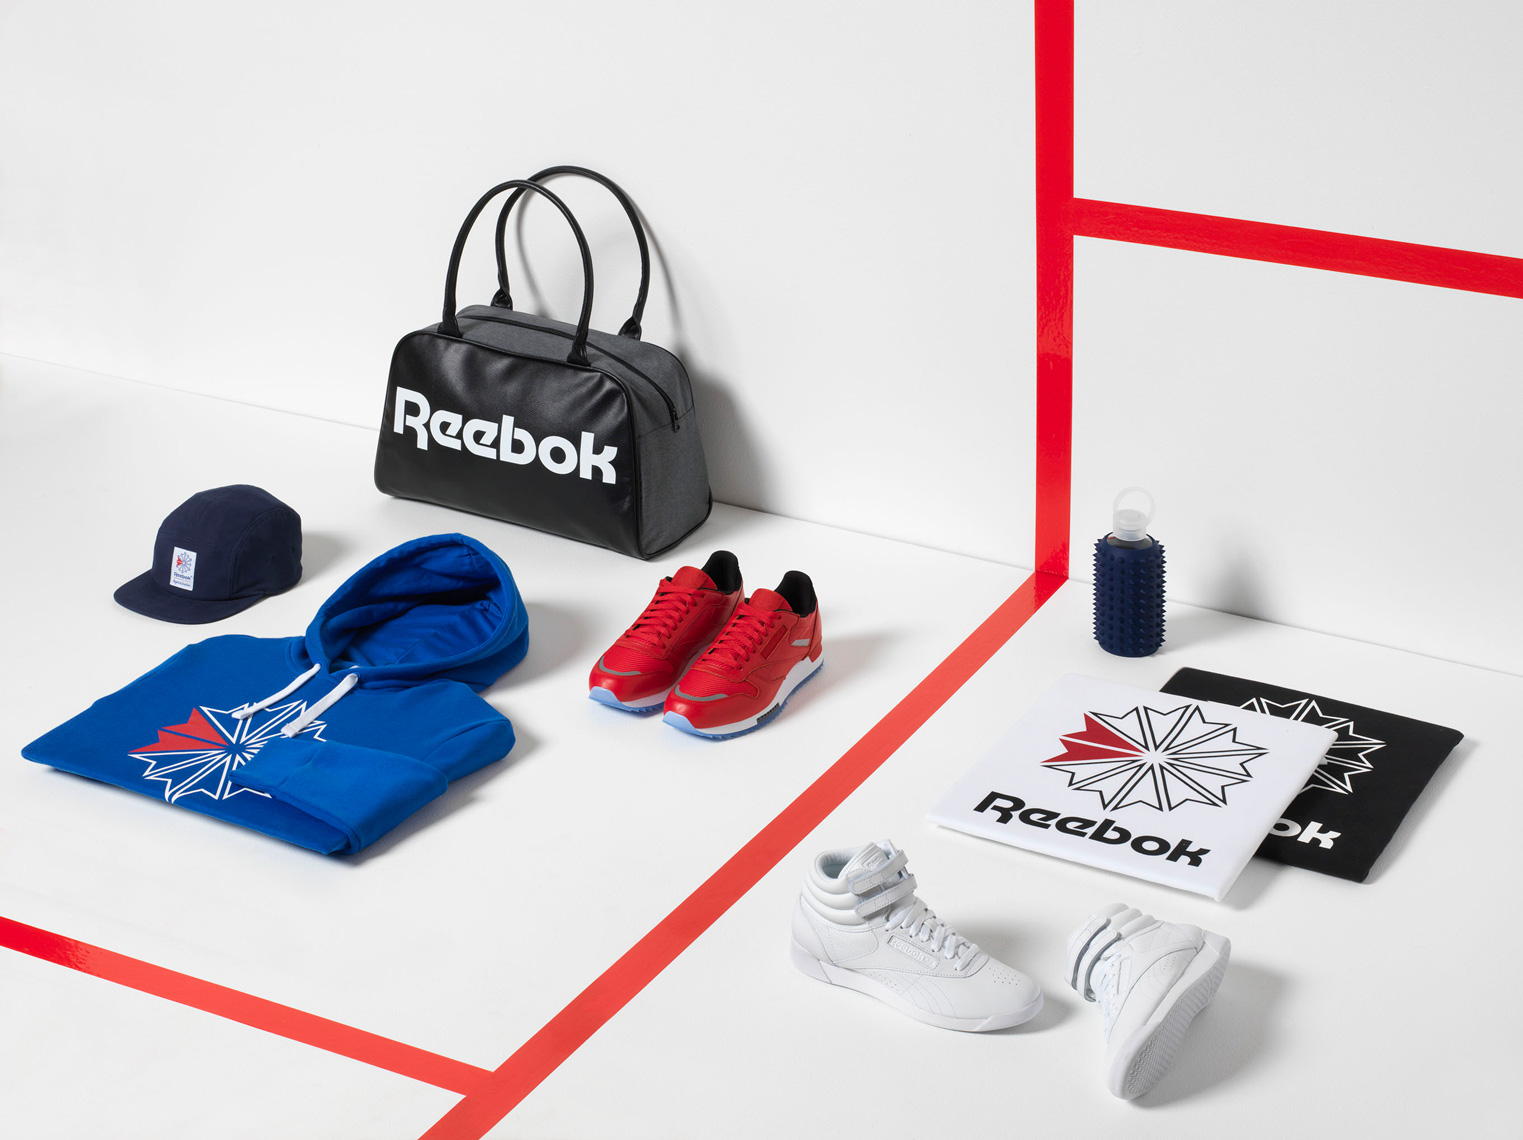 mens reebok sportswear on a white court with red stripe